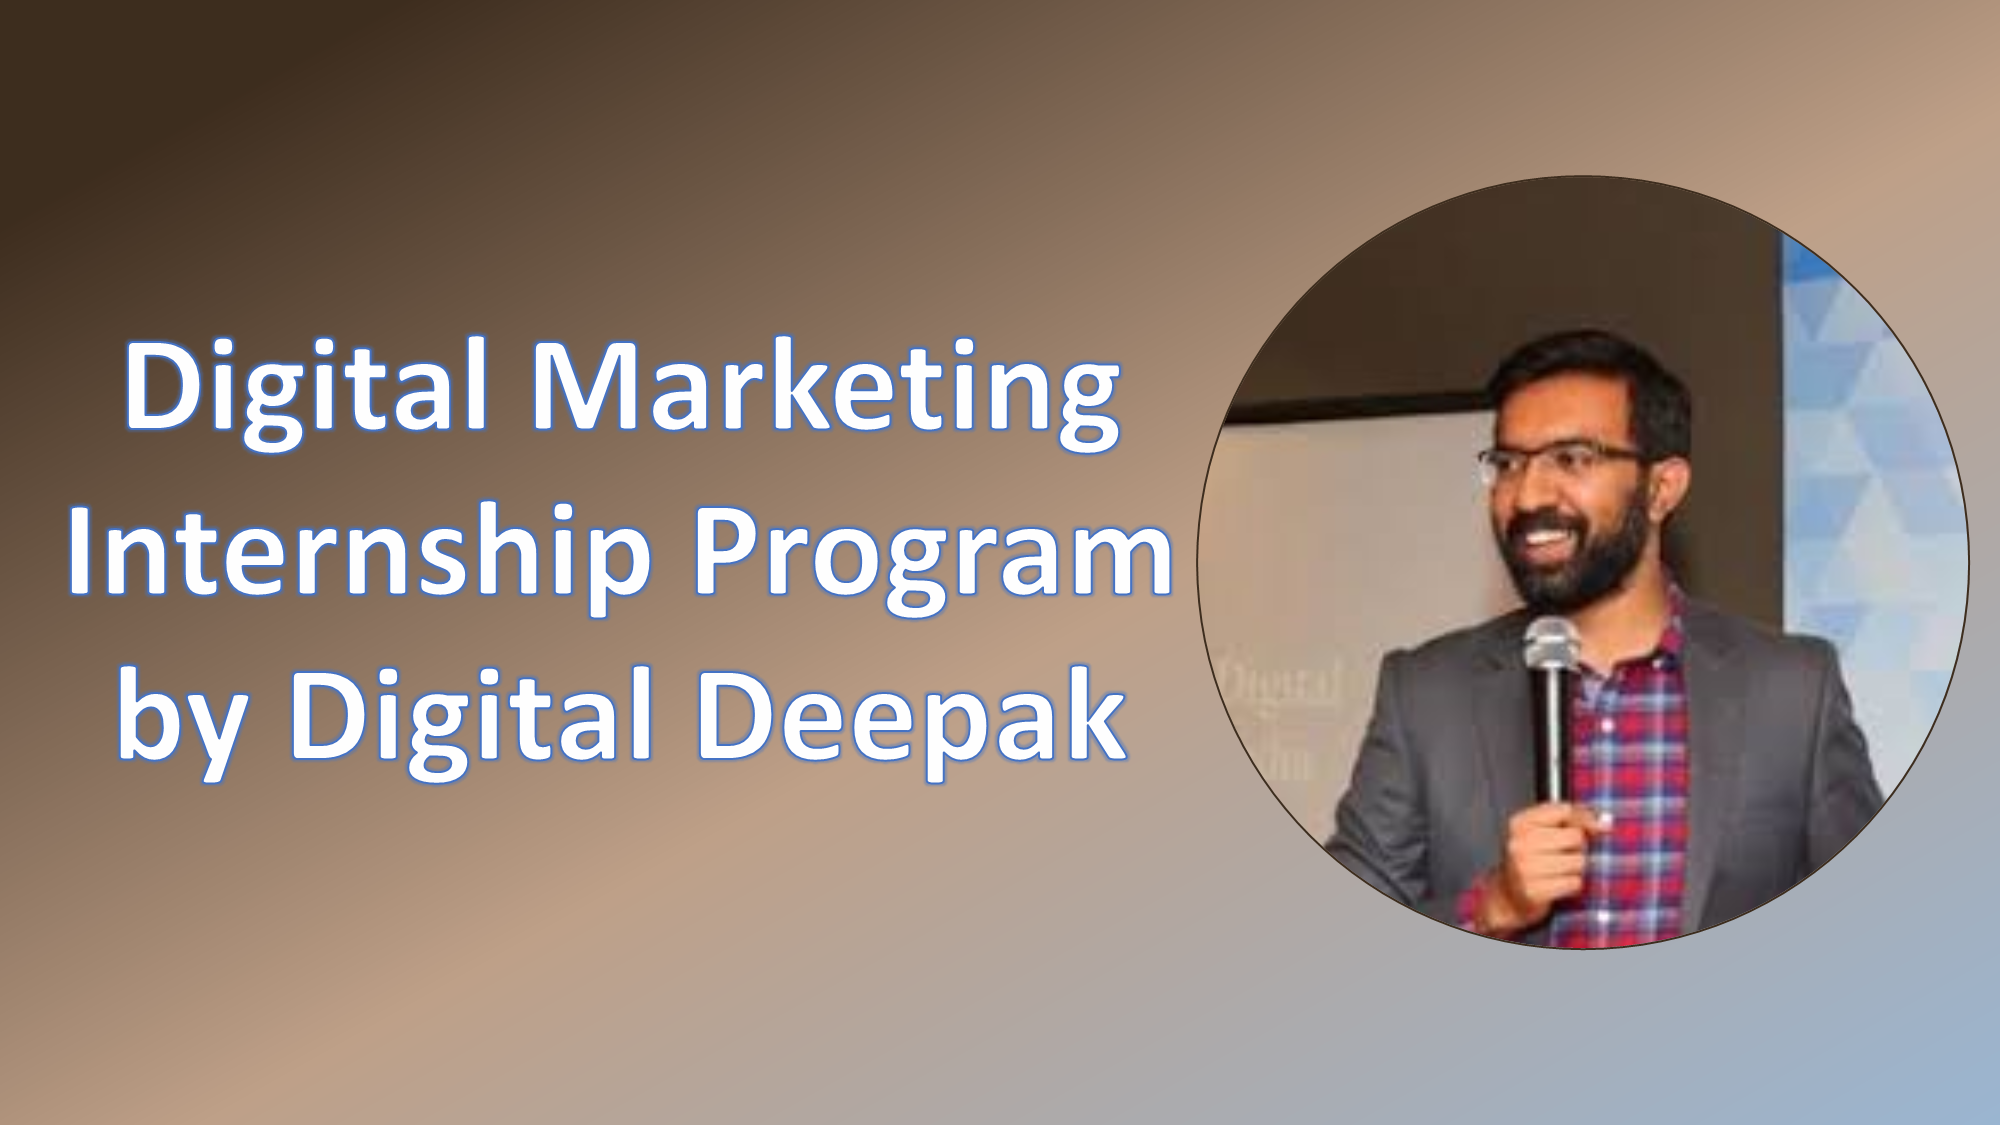 Digital Deepak Internship program on Digital Marketing: A Revolution in Digital Marketing Training in 2020